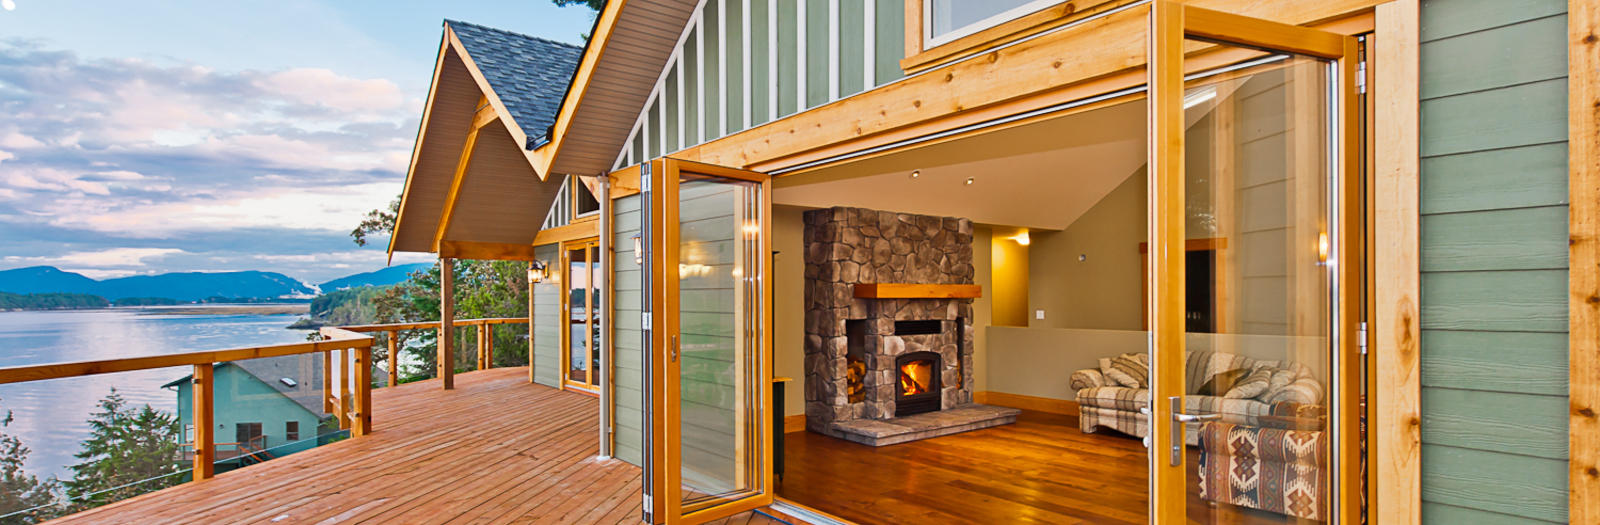 Lodge Home Exterior with glass paneled railing with natural wood trim